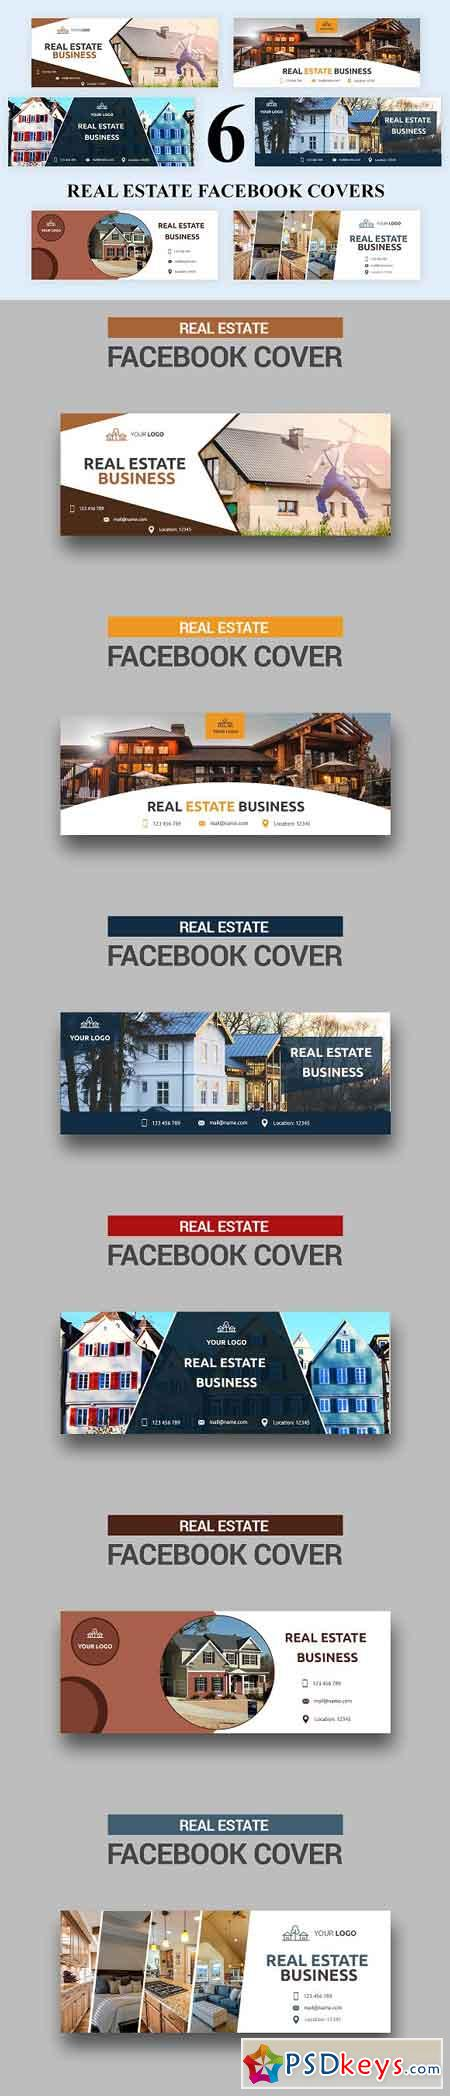 Real Estate Facebook Covers - SK 3033050